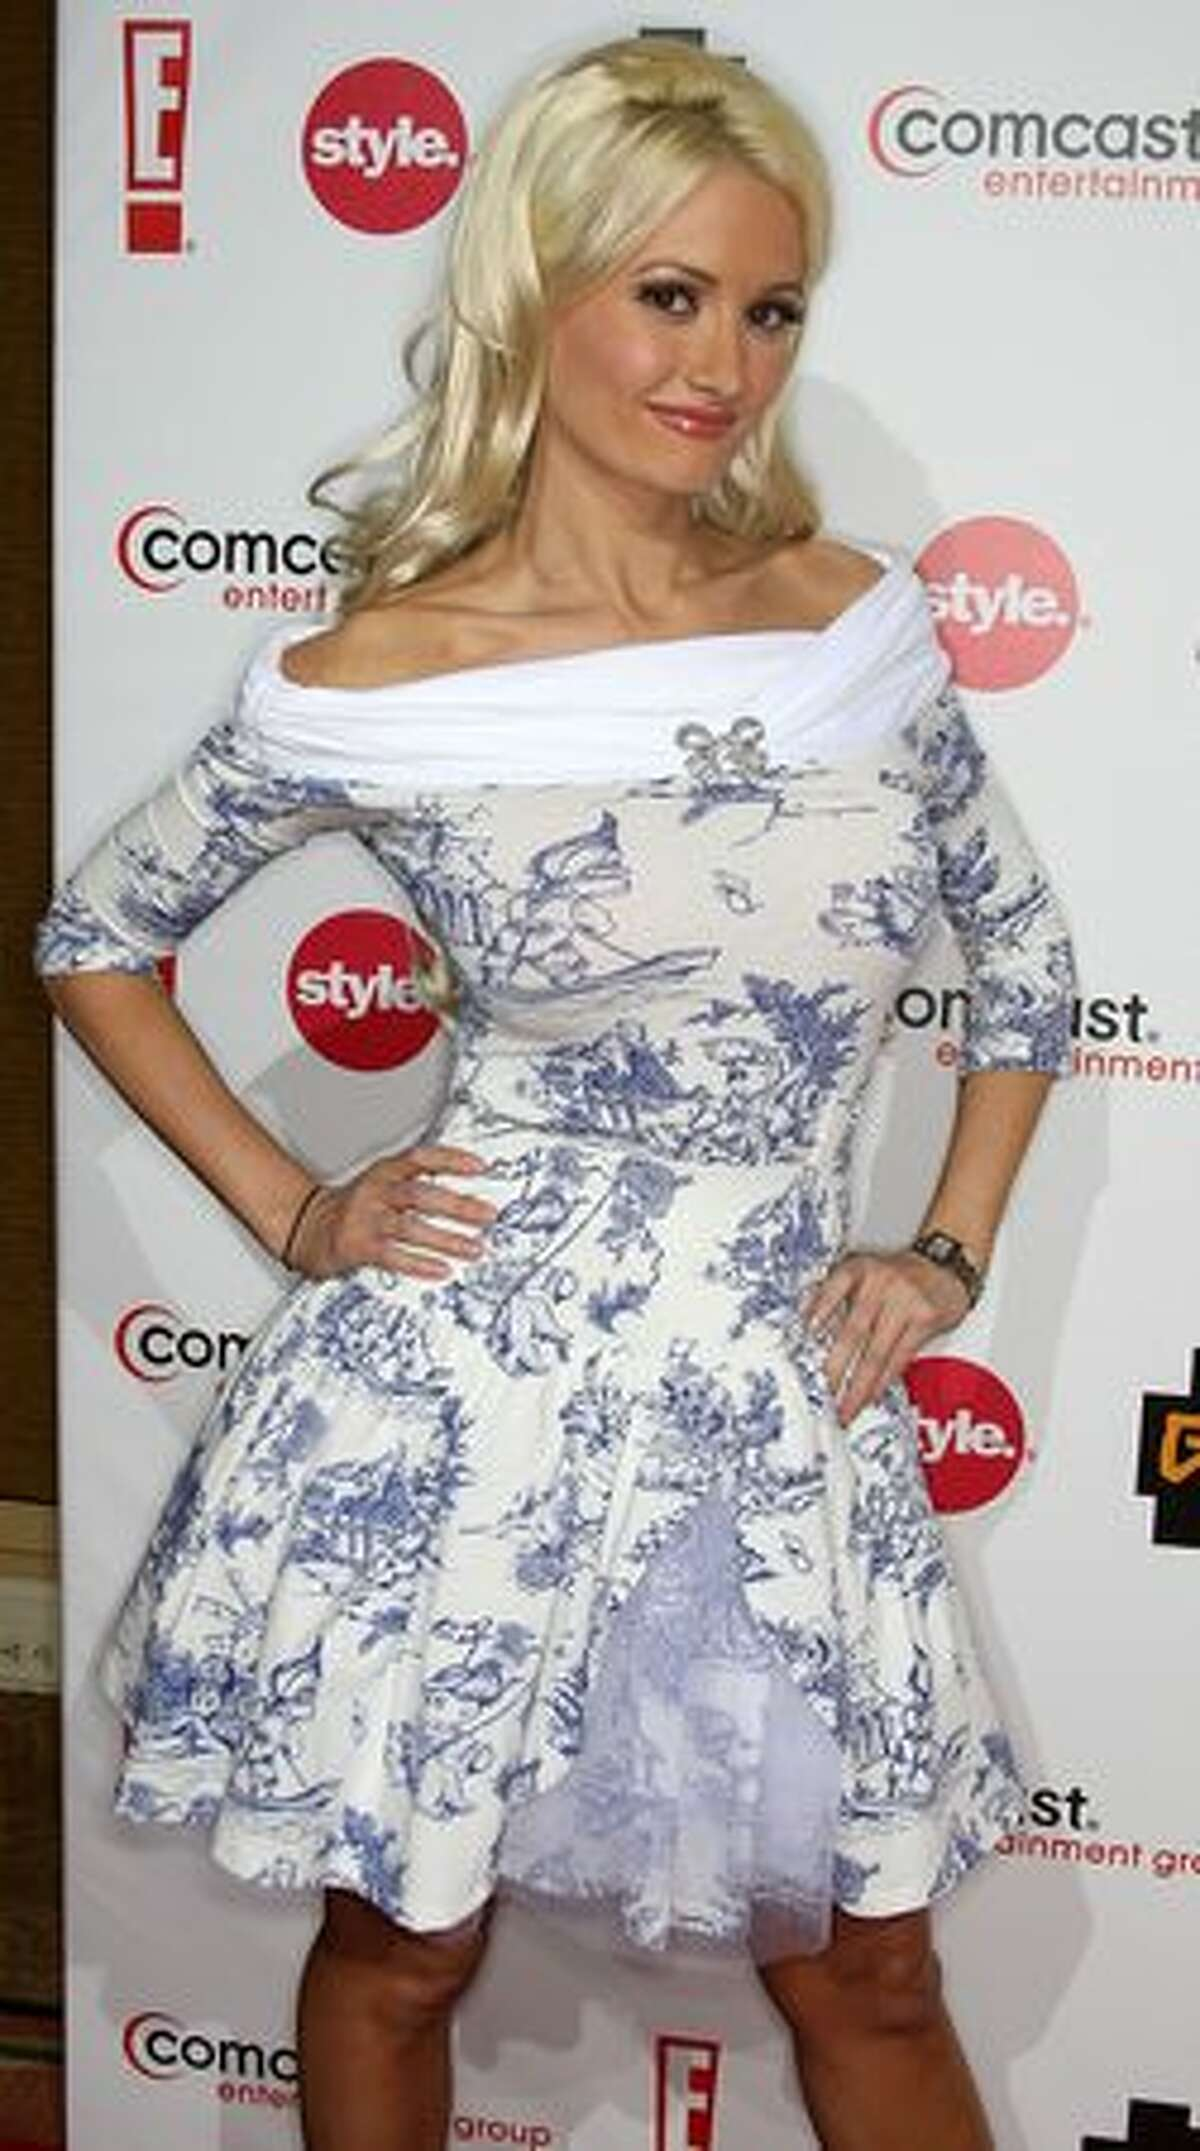 Actress Holly Madison attends the Comcast Entertainment Group's Television Critics Association Press Tour Party at the Langham Hotel on January 15, 2010, in Pasadena, California.